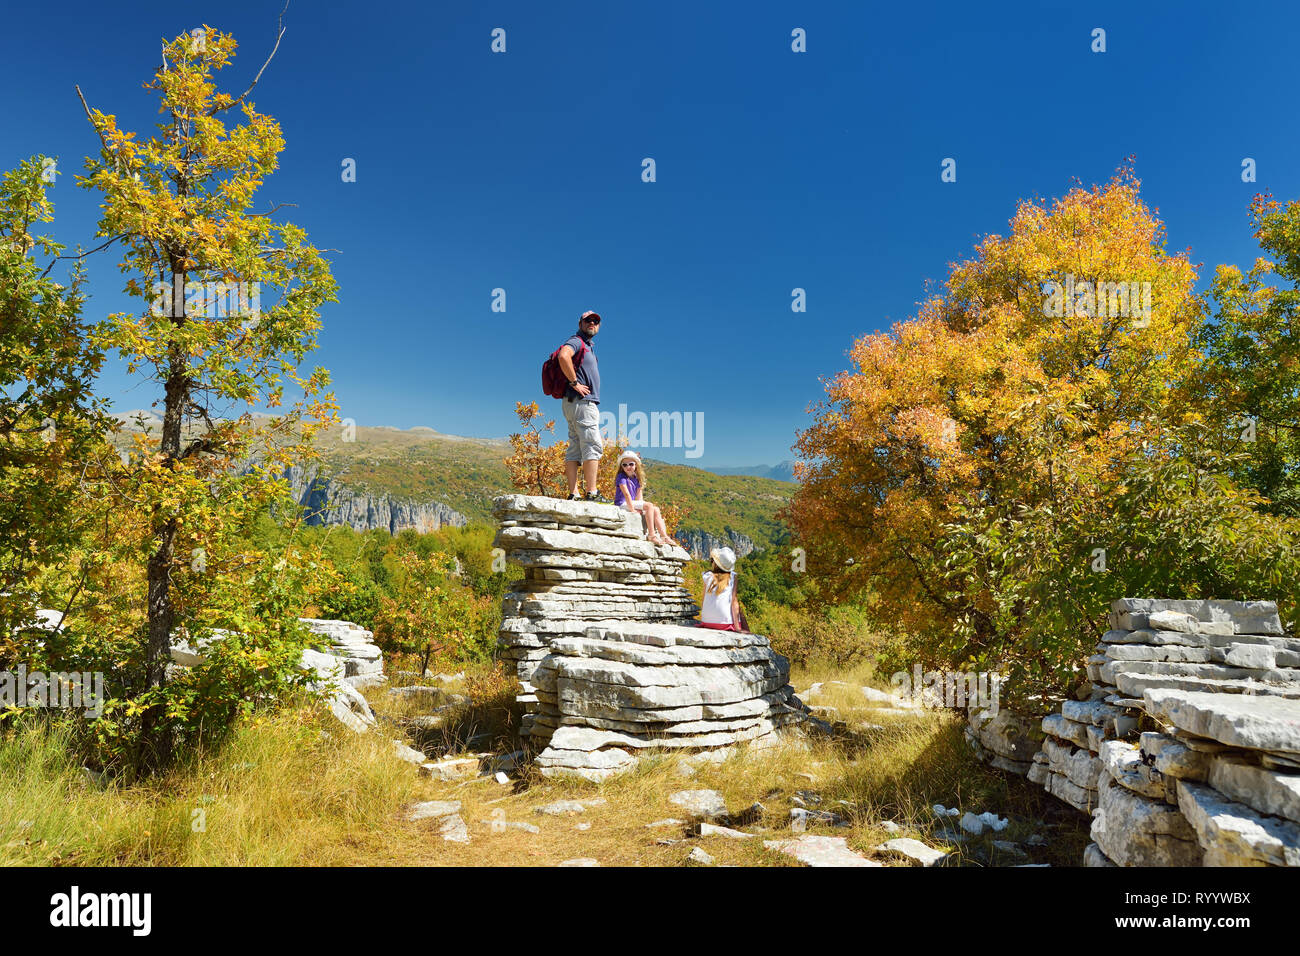 Father and kids exploring Stone forest, natural rock formation, created by multiple layers of stone, located near Monodendri village in Zagori region, - Stock Image